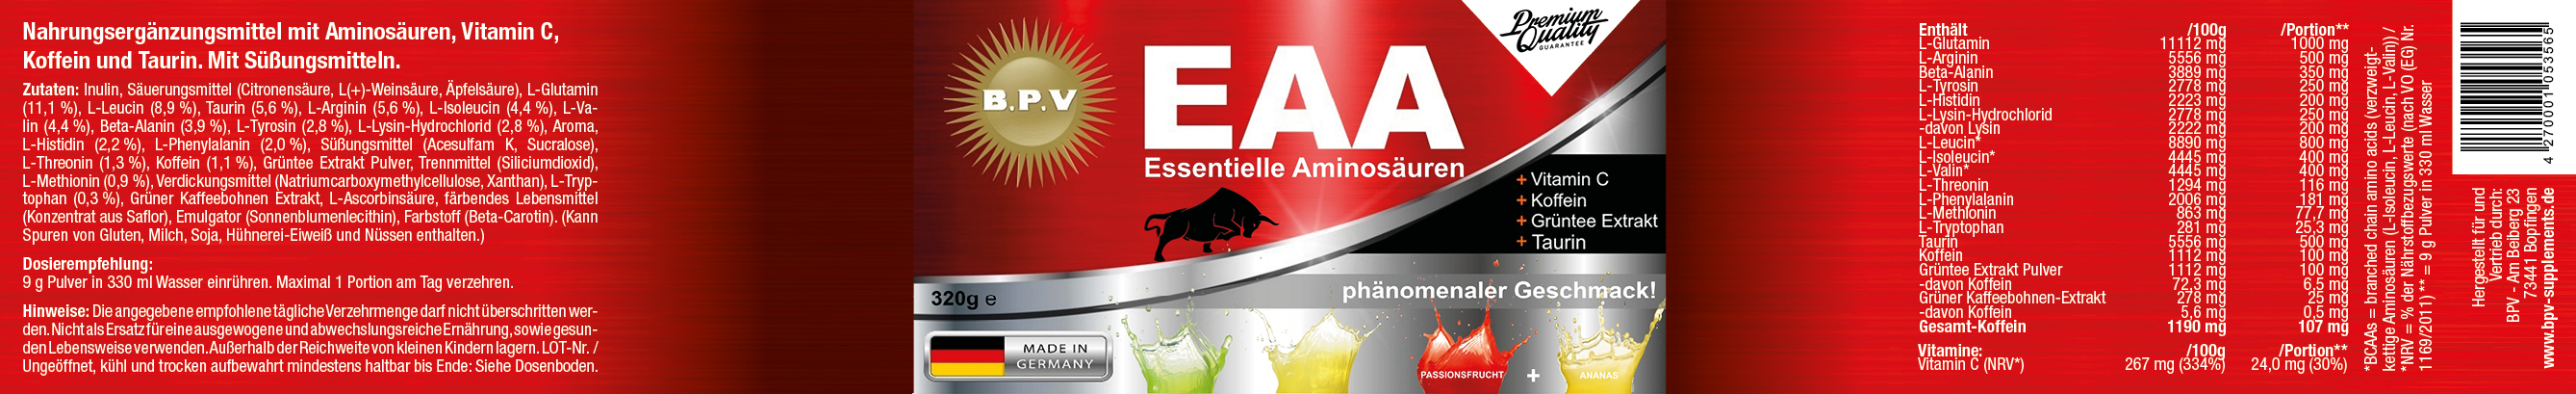 ANSICHT_EAA-Instant-Pulver_320g_750ml-Dose_Ananas-Passionsfrucht_